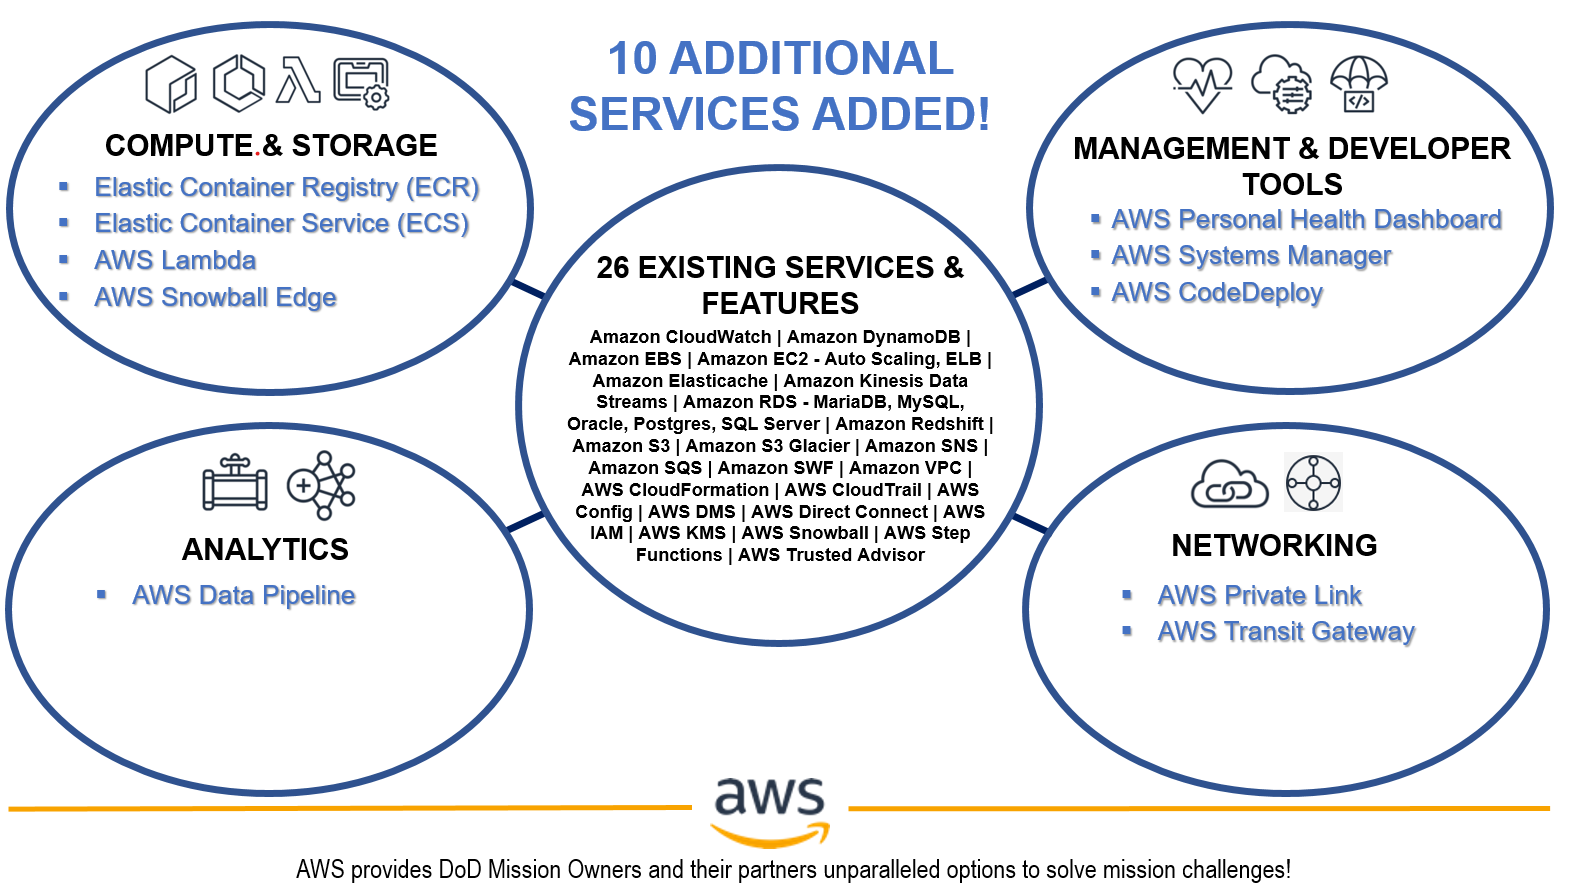 Figure 1: 10 additional AWS services authorized at DoD Impact Level 6